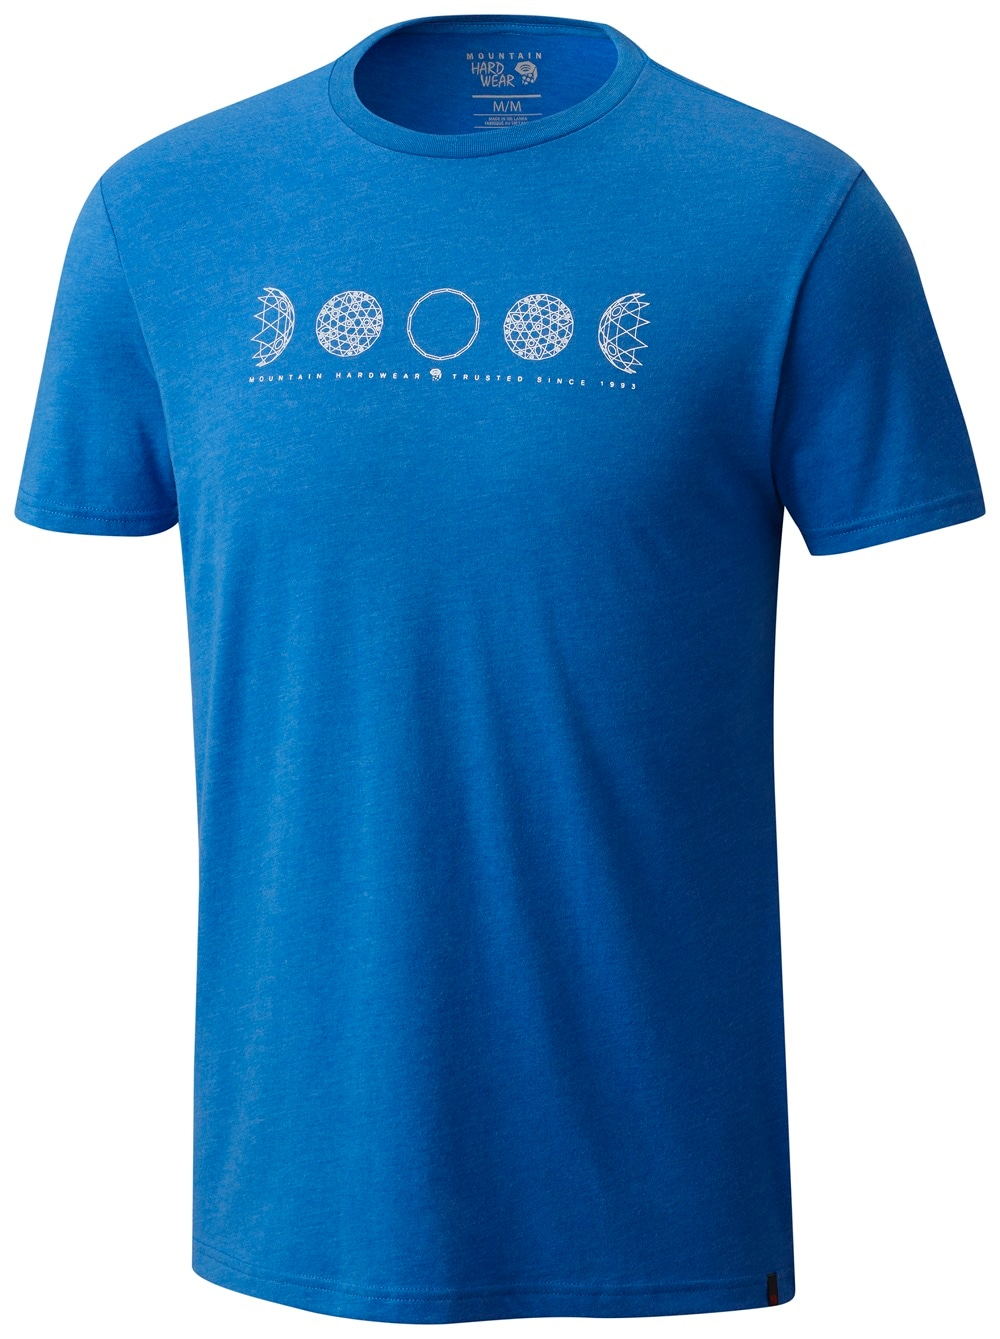 Mountain Hardwear Phases of Space Station T-Shirt M's